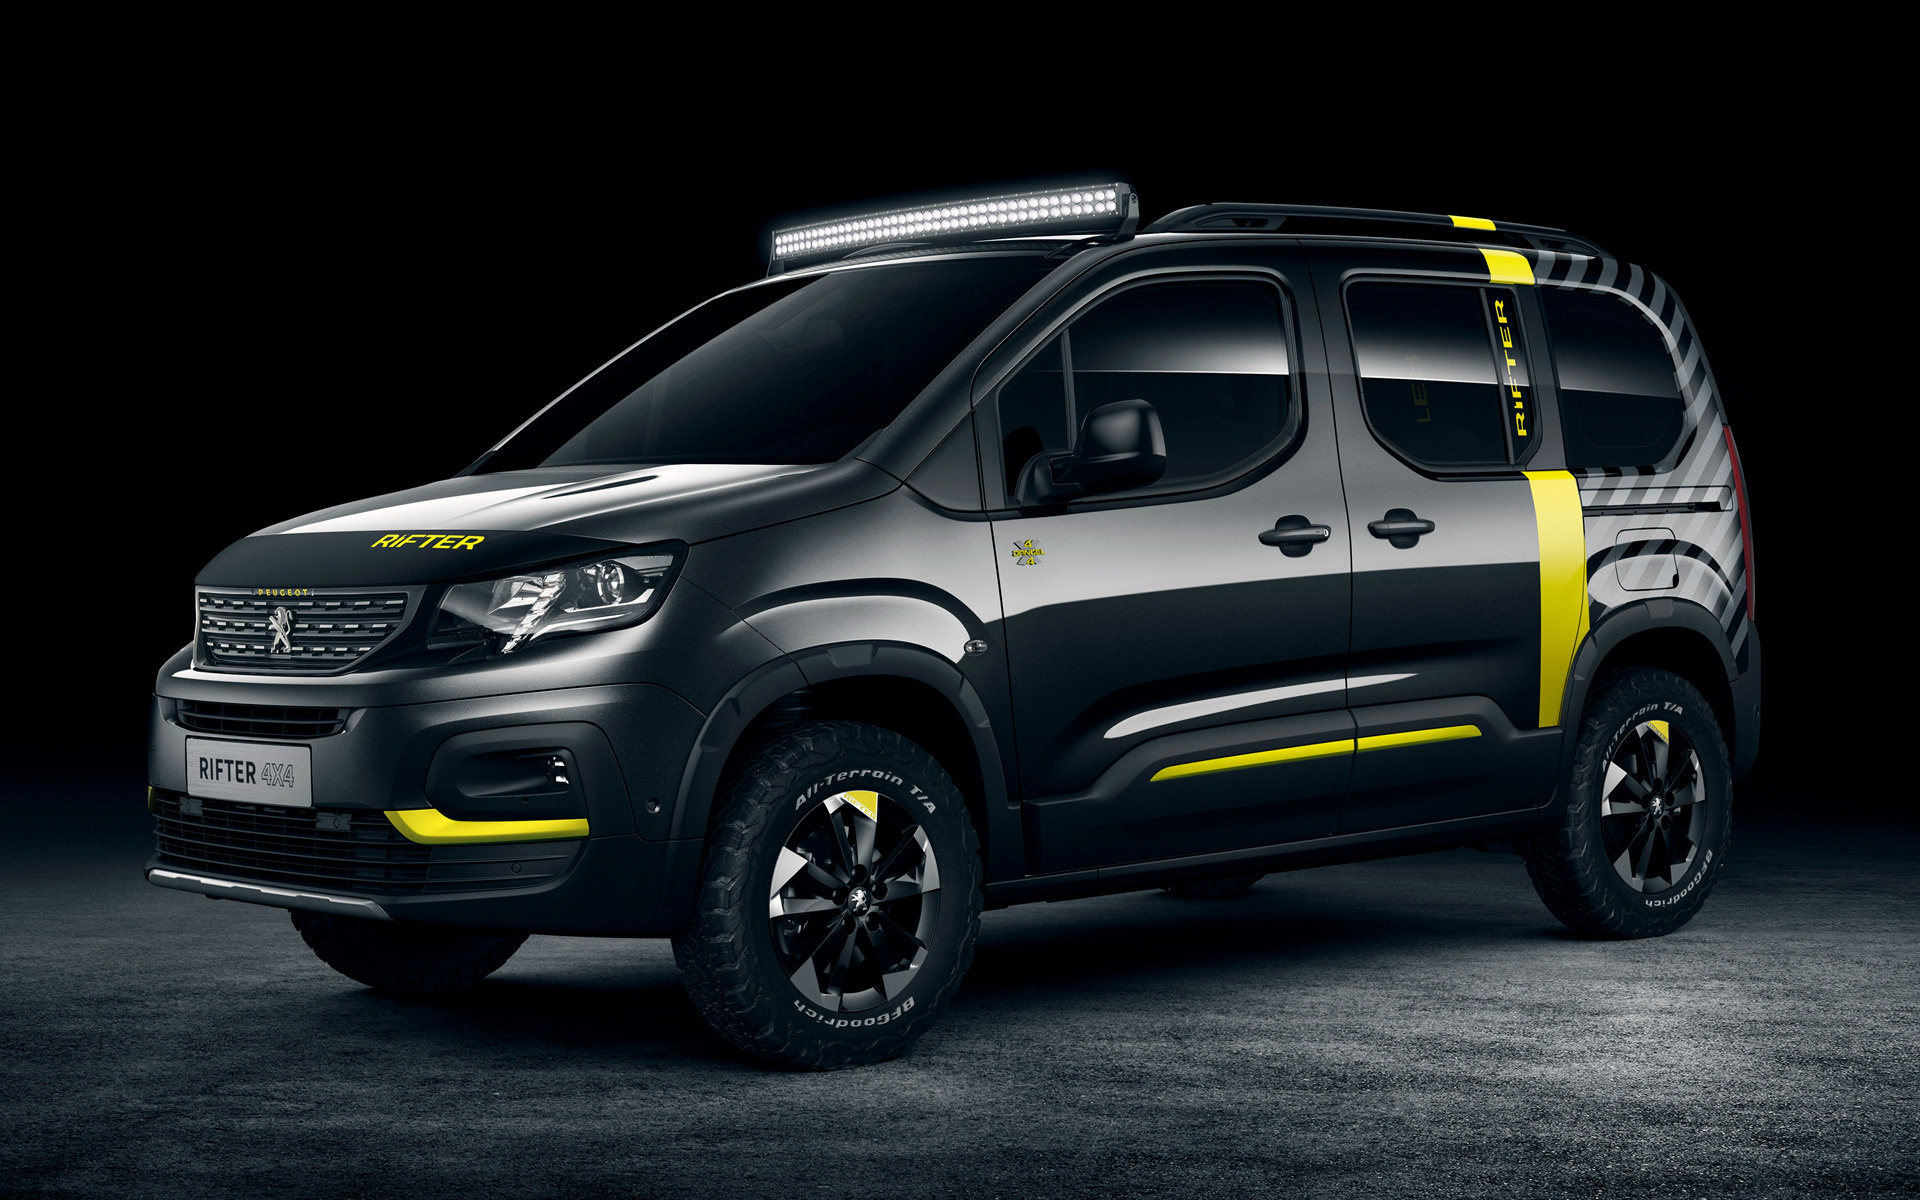 2018 Peugeot Rifter 4x4 Concept - Wallpapers and HD Images ...